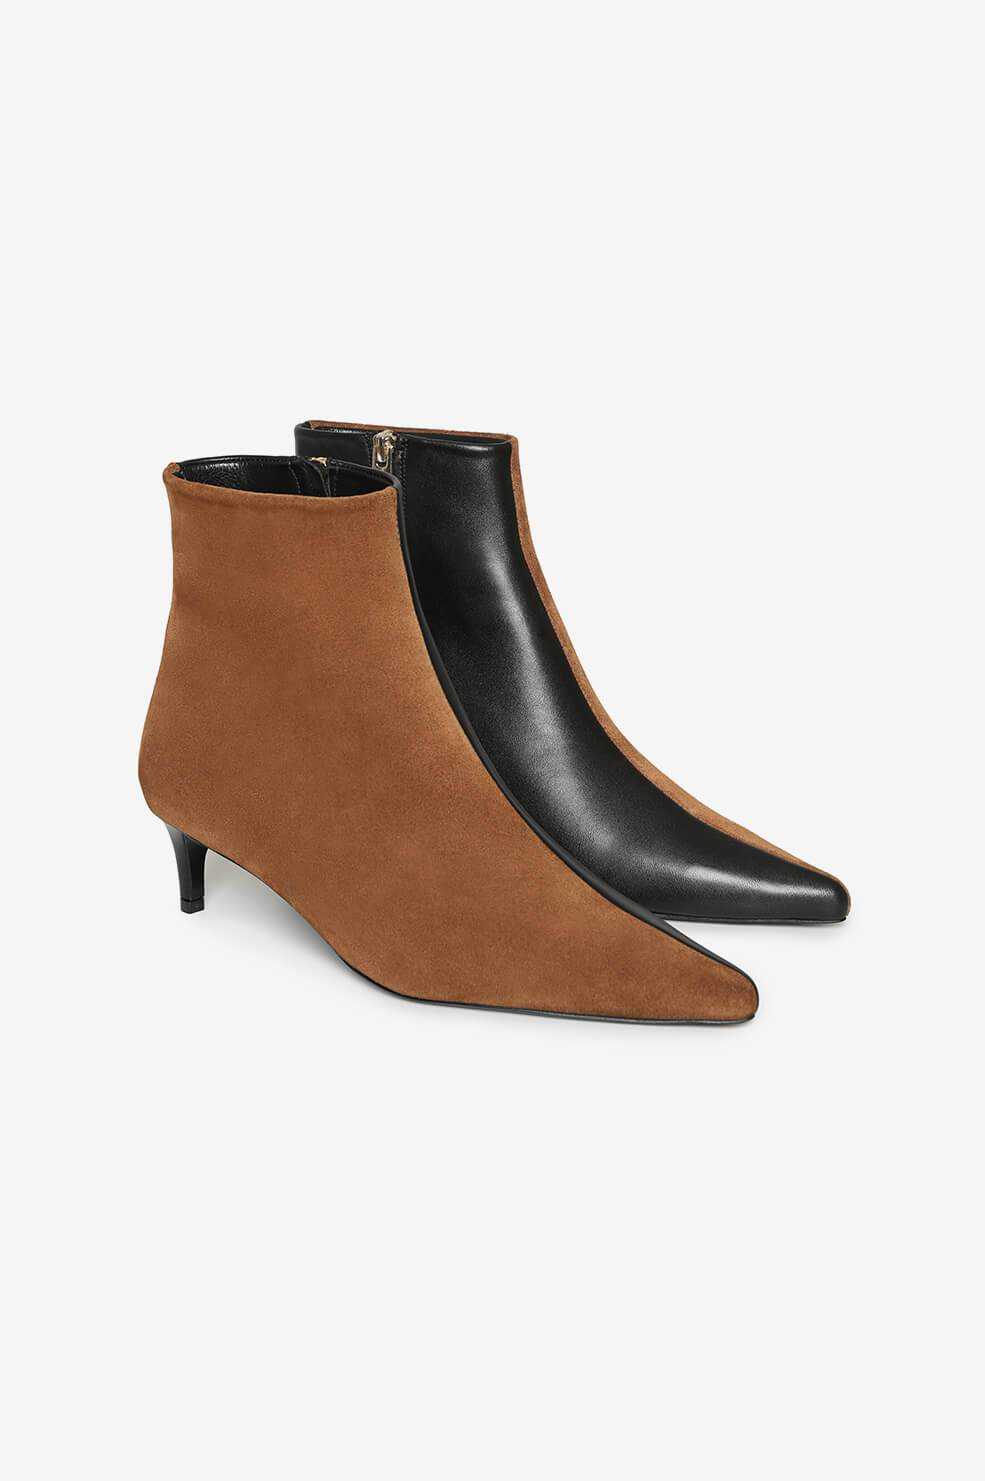 Loren Boots - Cognac And Black